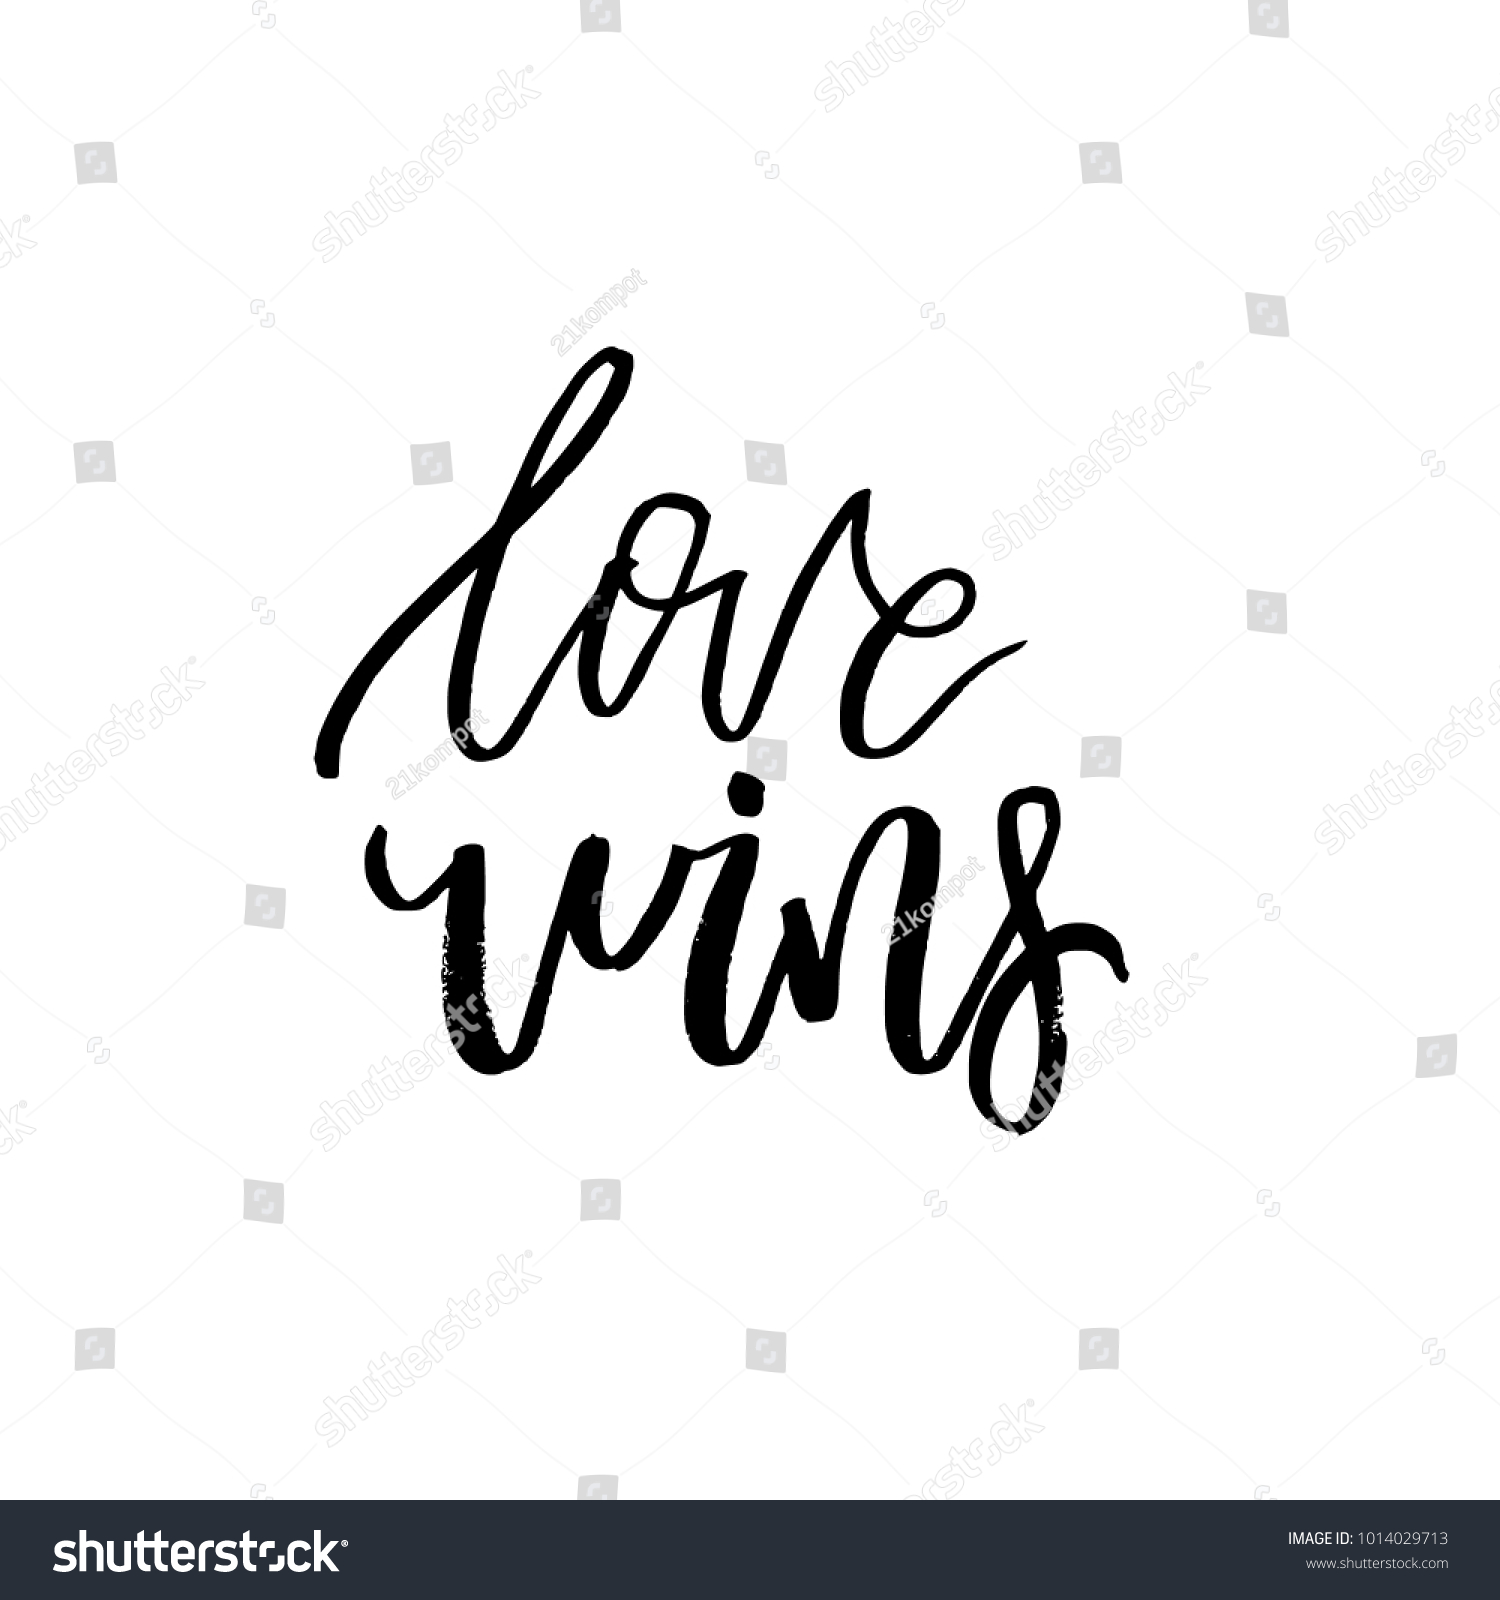 Love wins happy valentines day card stock vector 1014029713 love wins happy valentines day card with calligraphy text on white template for greetings kristyandbryce Images